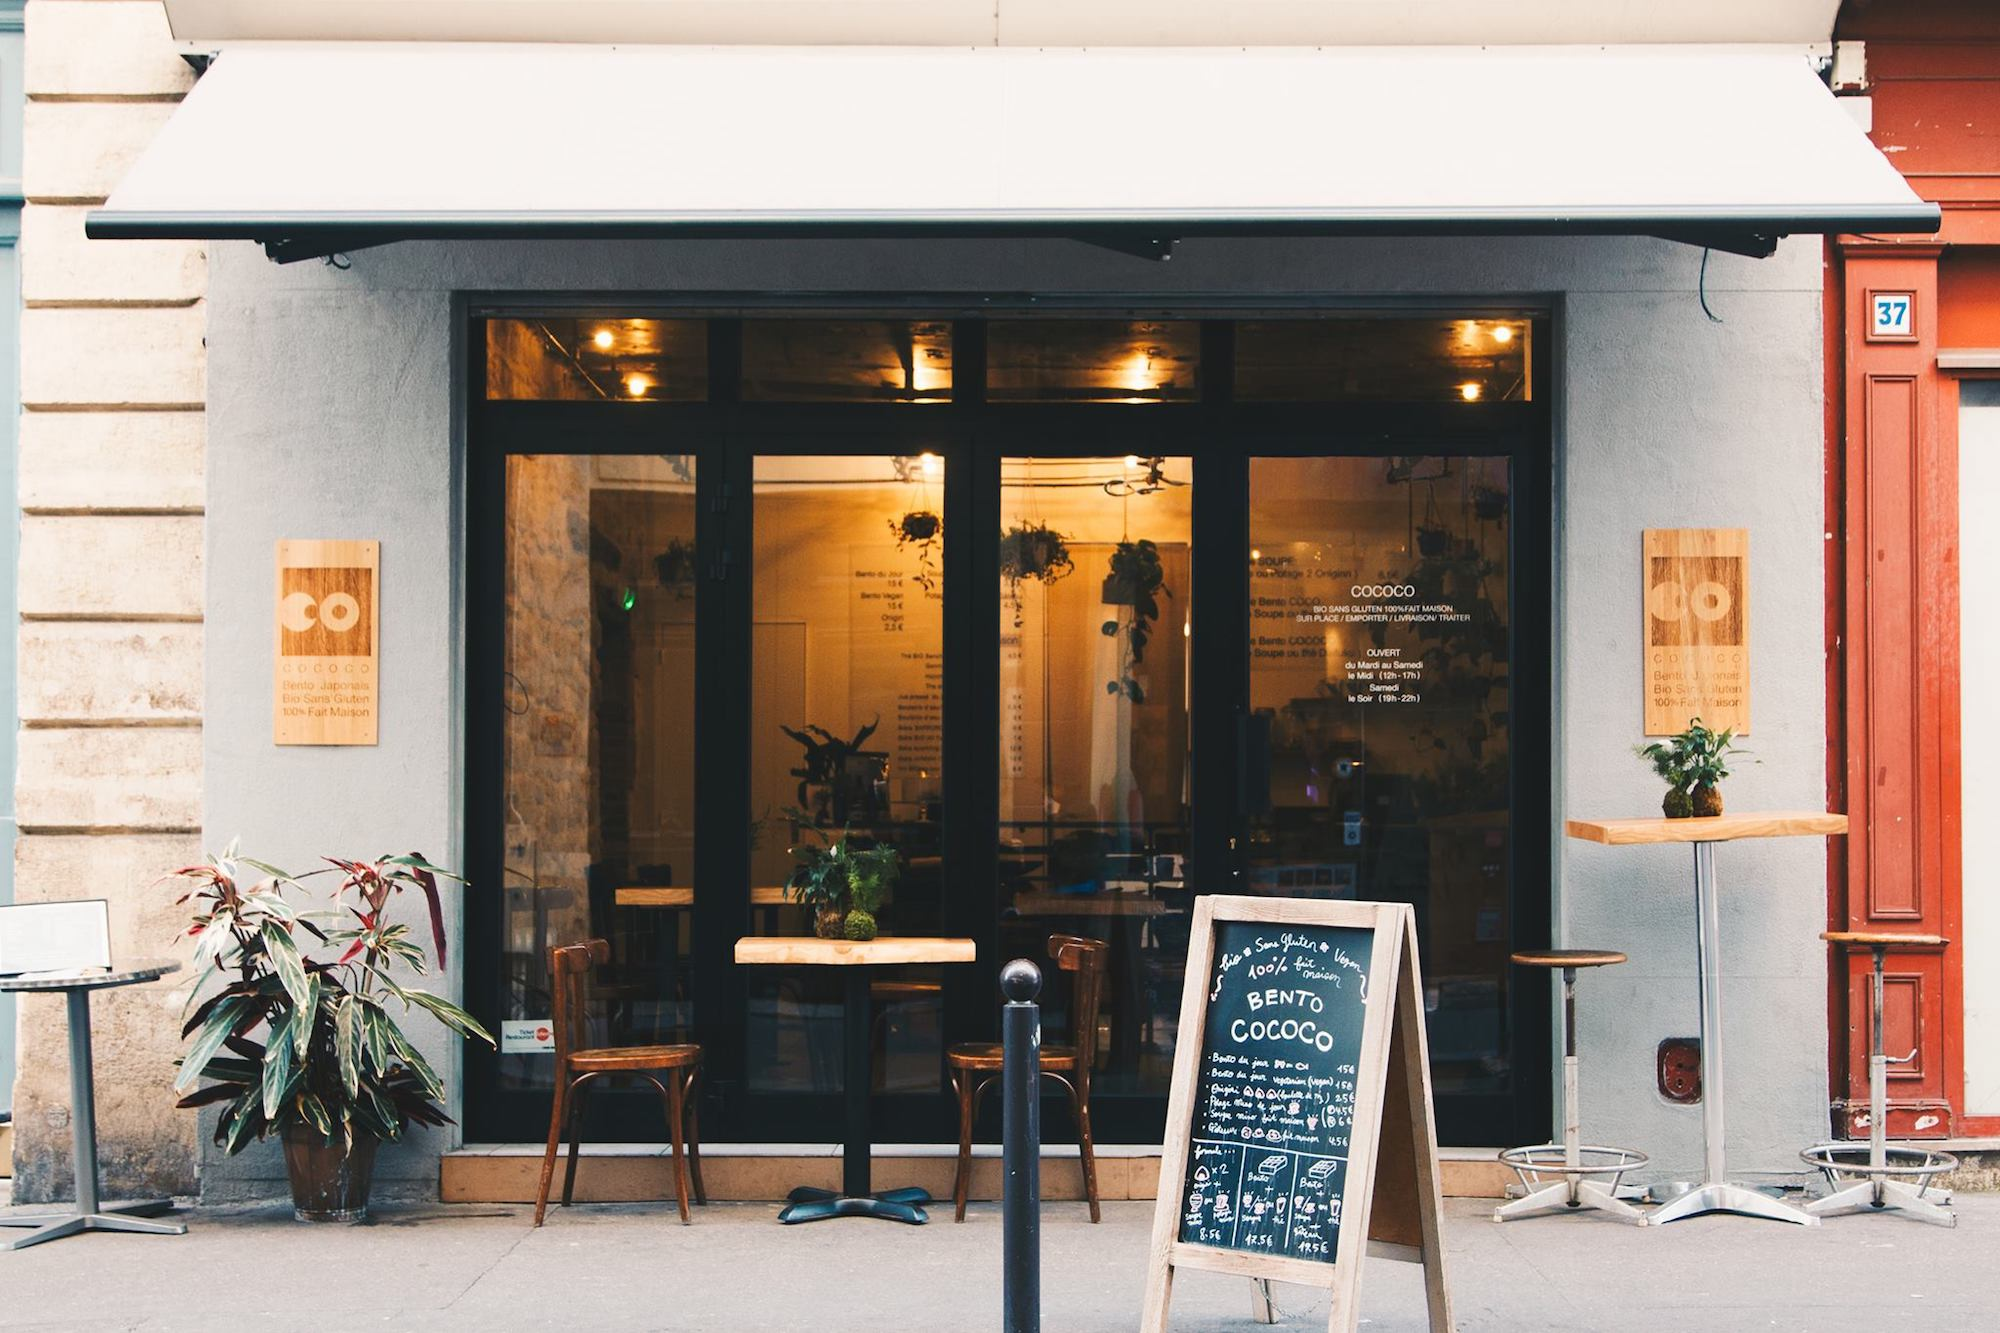 HiP Paris Blog explores healthy living in Paris like food at Bento Cococo restaurant, the exterior seen here with a chalkboard menu outside.